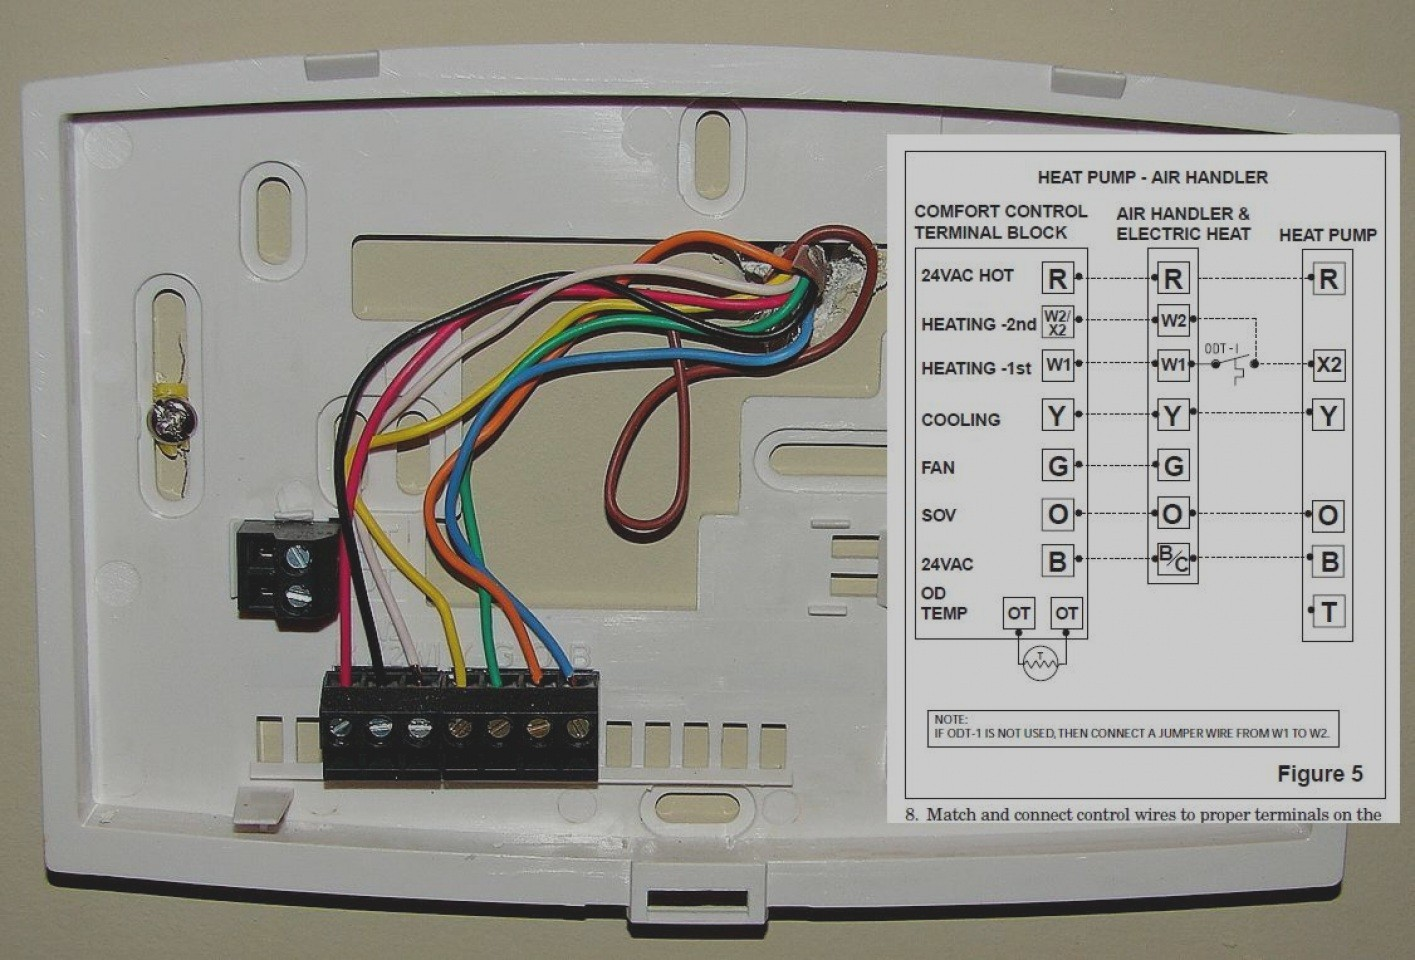 hight resolution of honeywell thermostat th5220d1003 wiring diagram electrical 7351 honeywell programmable thermostat wiring diagram